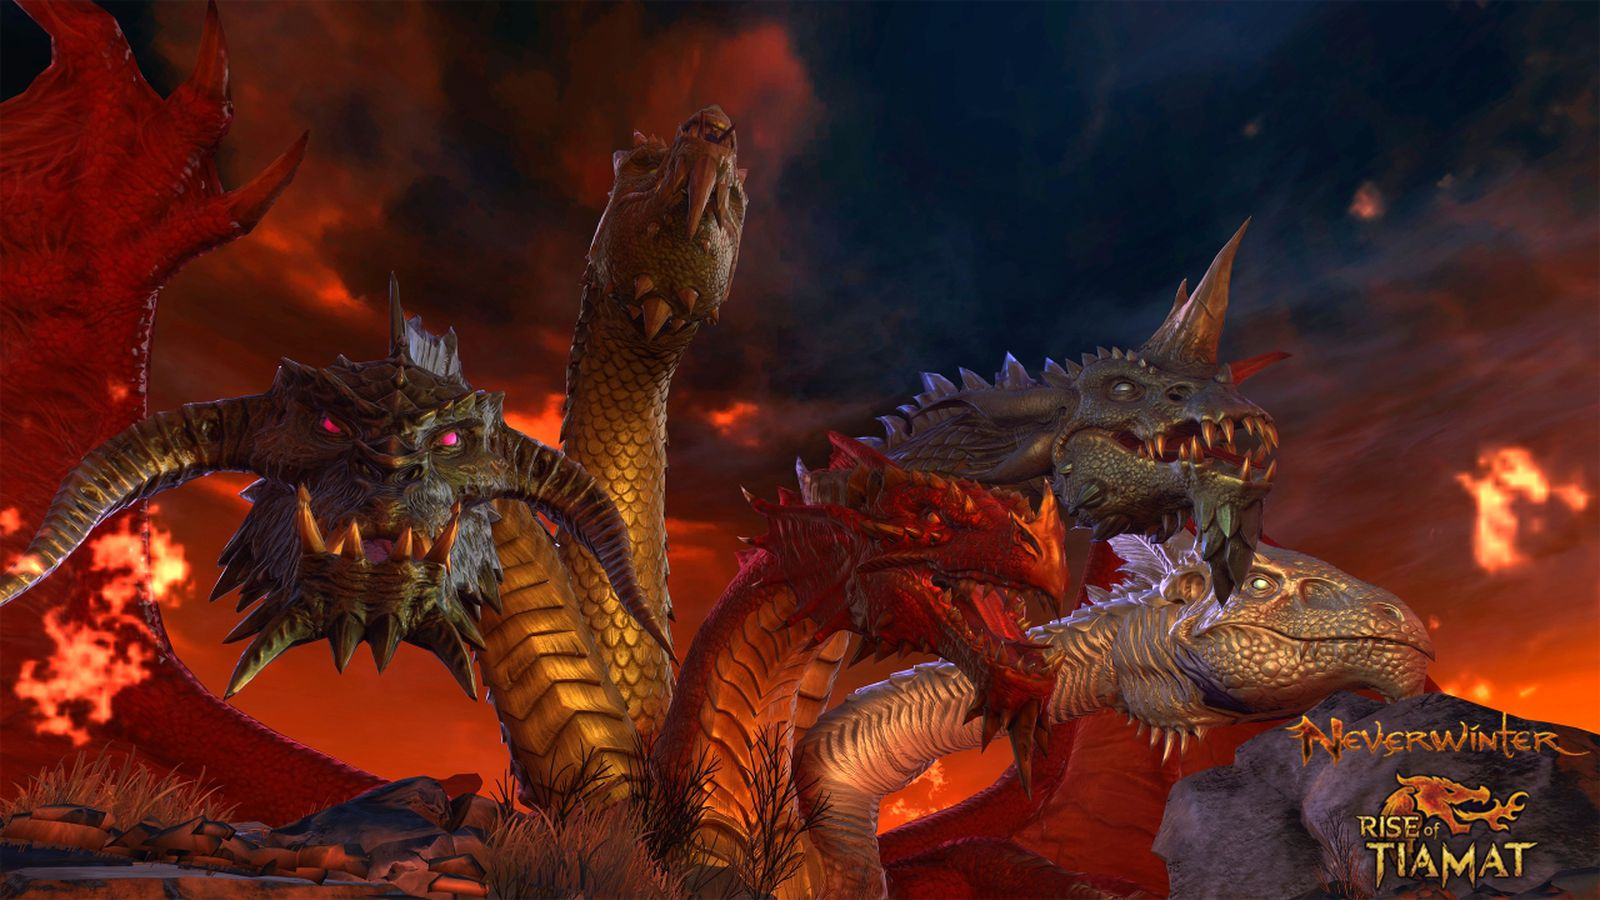 Neverwinter MMO brings Rise of Tiamat expansion to Xbox